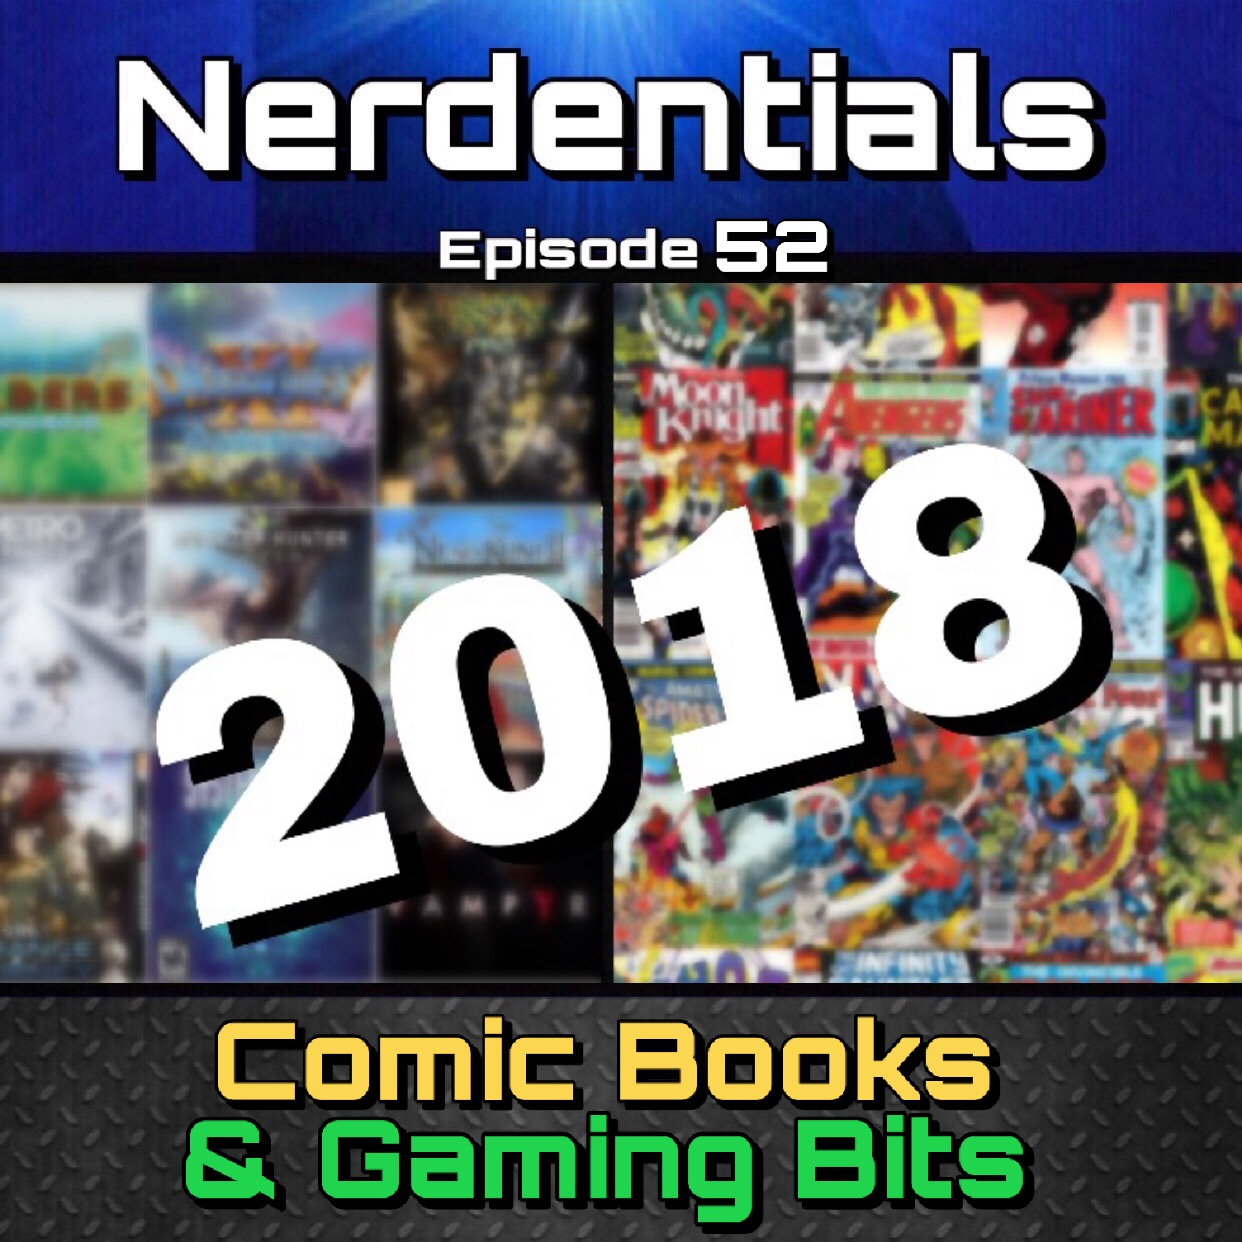 - Welcome to Nerdentials! Your weekly dose of the nerdy essentials. Covering Film, TV, Video Games and Comics.This Week Nerds your hosts, Joe, Nick and Lynn go over their top picks for Comic Books and Video Games from 2018! It's Our Year in Review, Part 2!